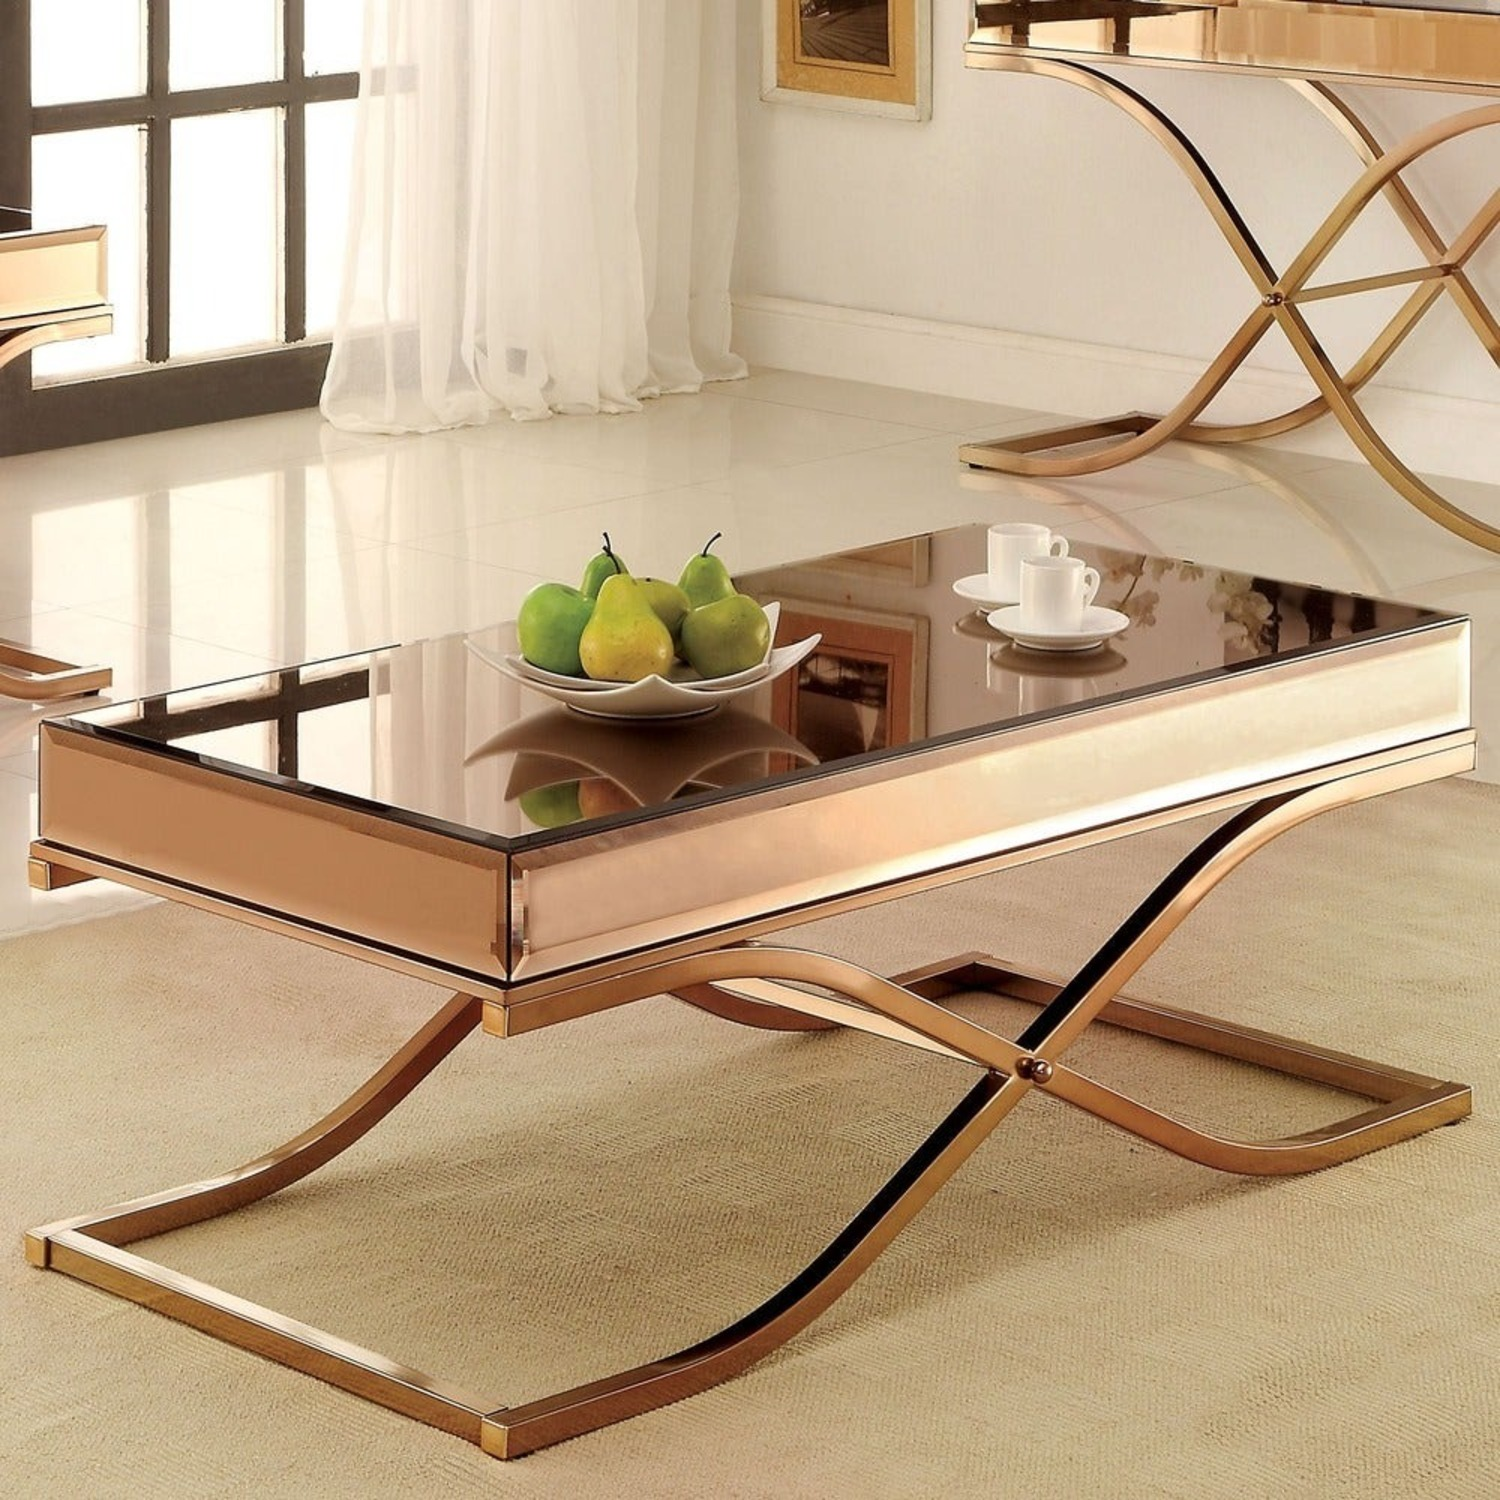 Laja Contemporary Gold Metal Coffee Table - image-1